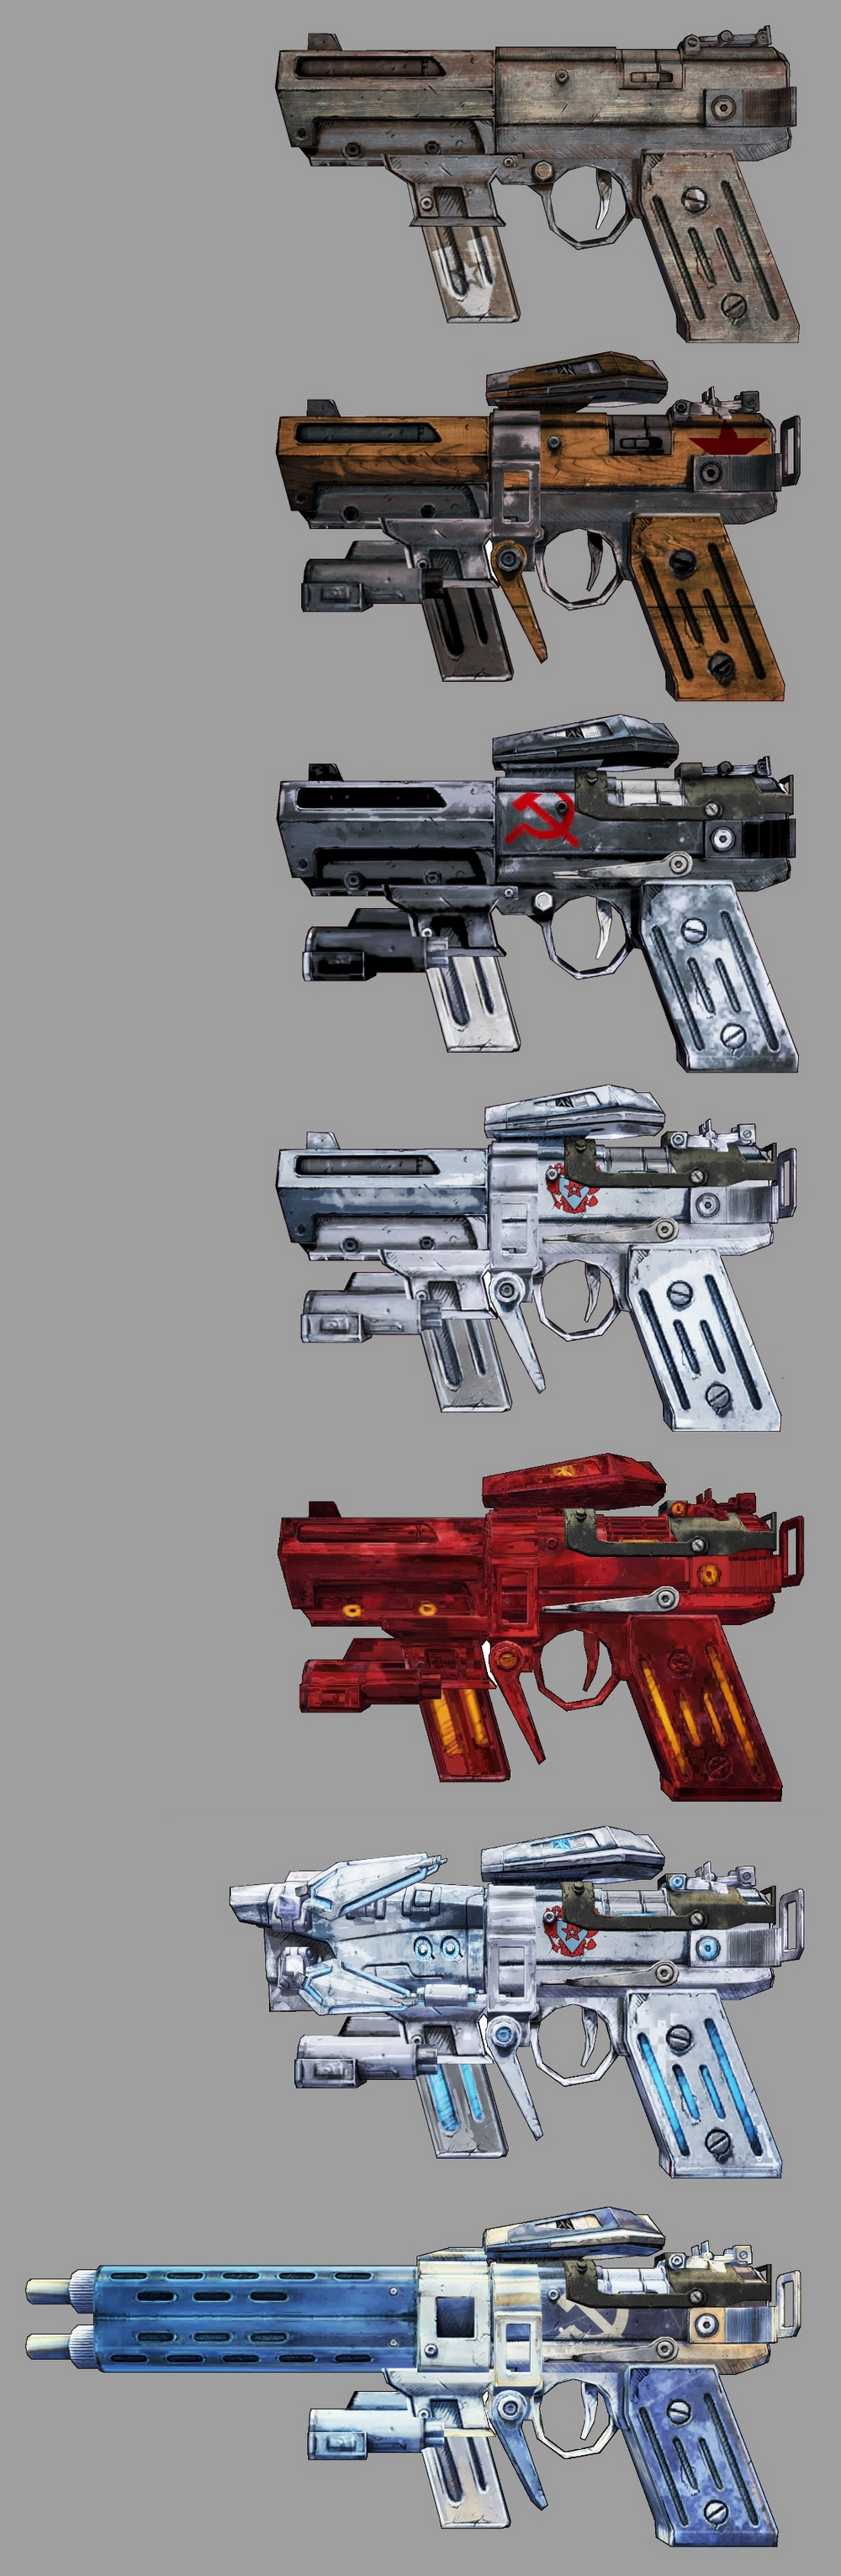 Weapon store sign clipart rpg clip royalty free stock Rpg 22 Airsoft clip royalty free stock